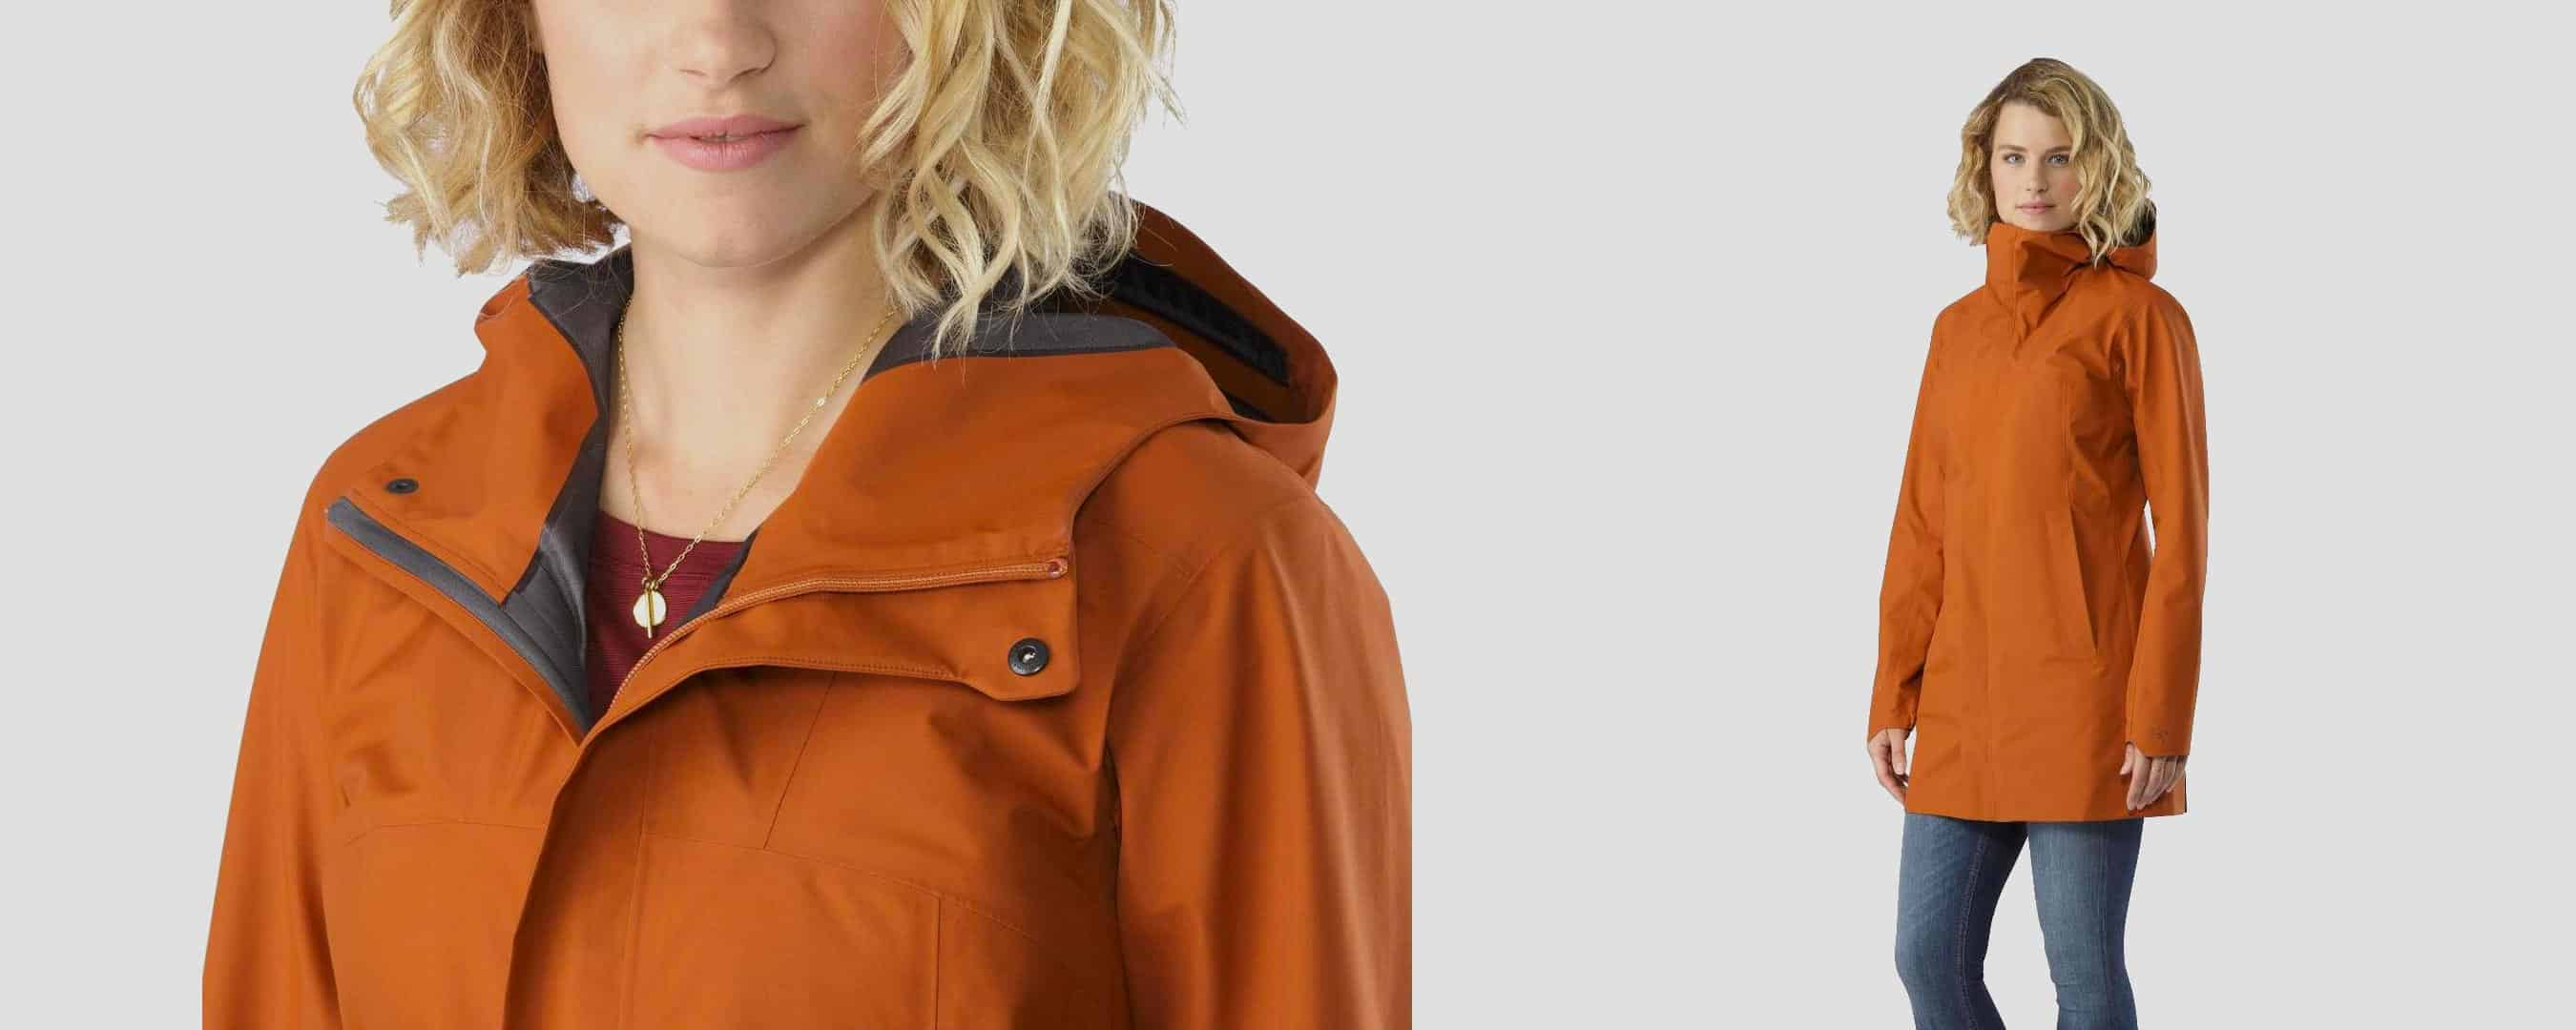 Arc'teryx, Barbour, RAINS, The North Face. 5 manteaux imperméables urbains pour femmes